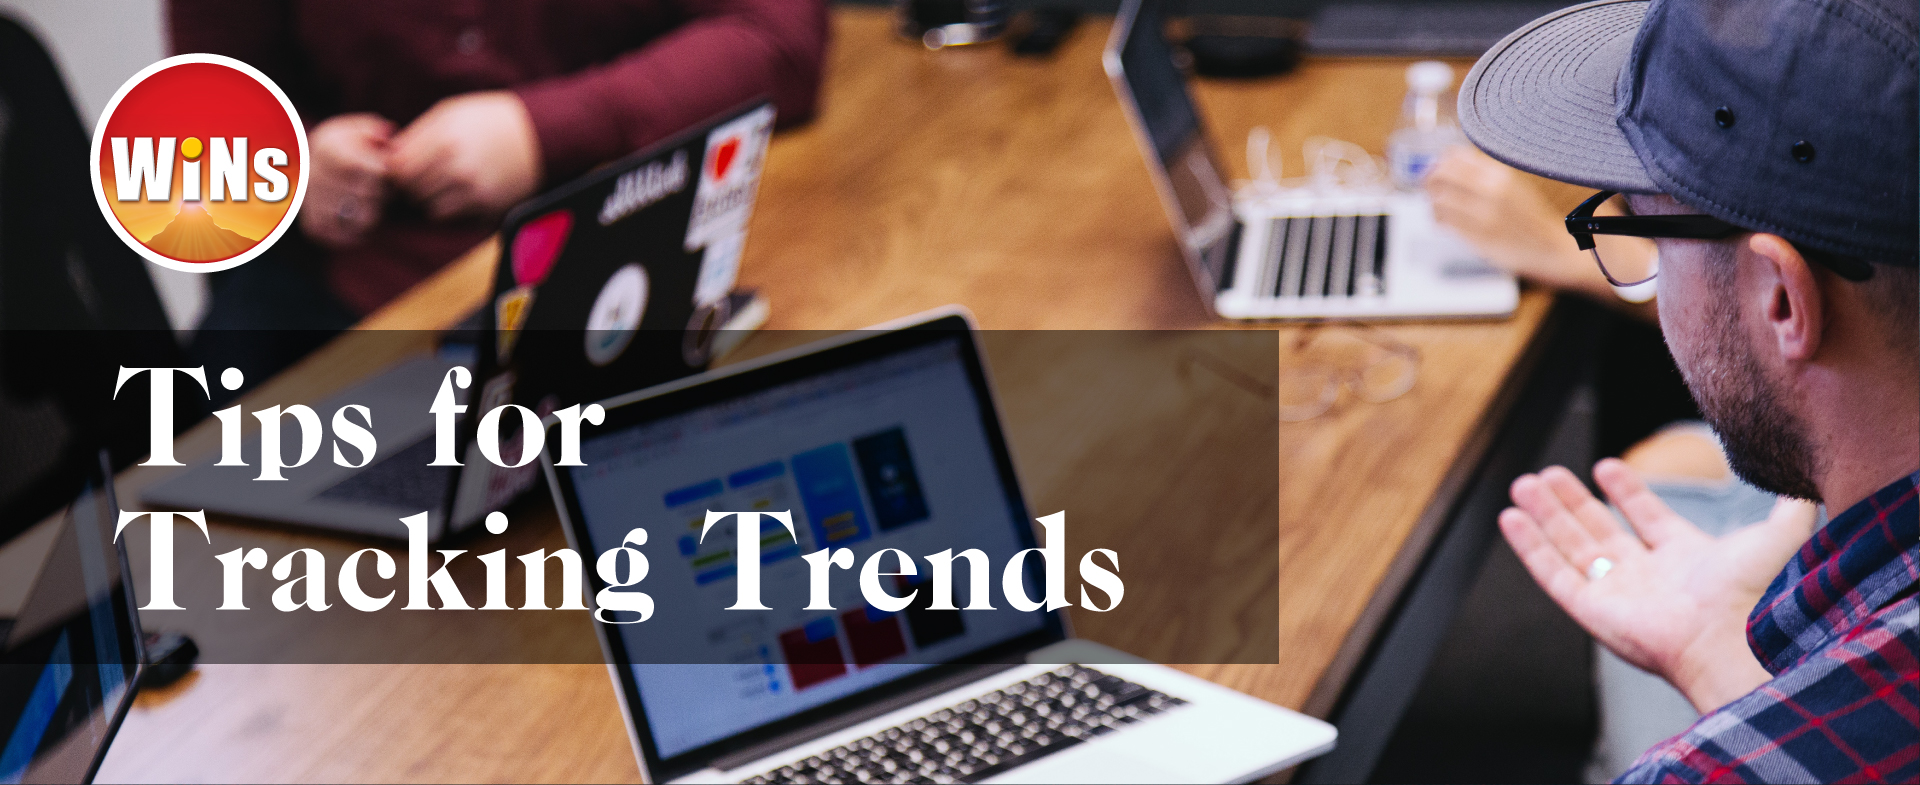 Tips for Tracking Trends